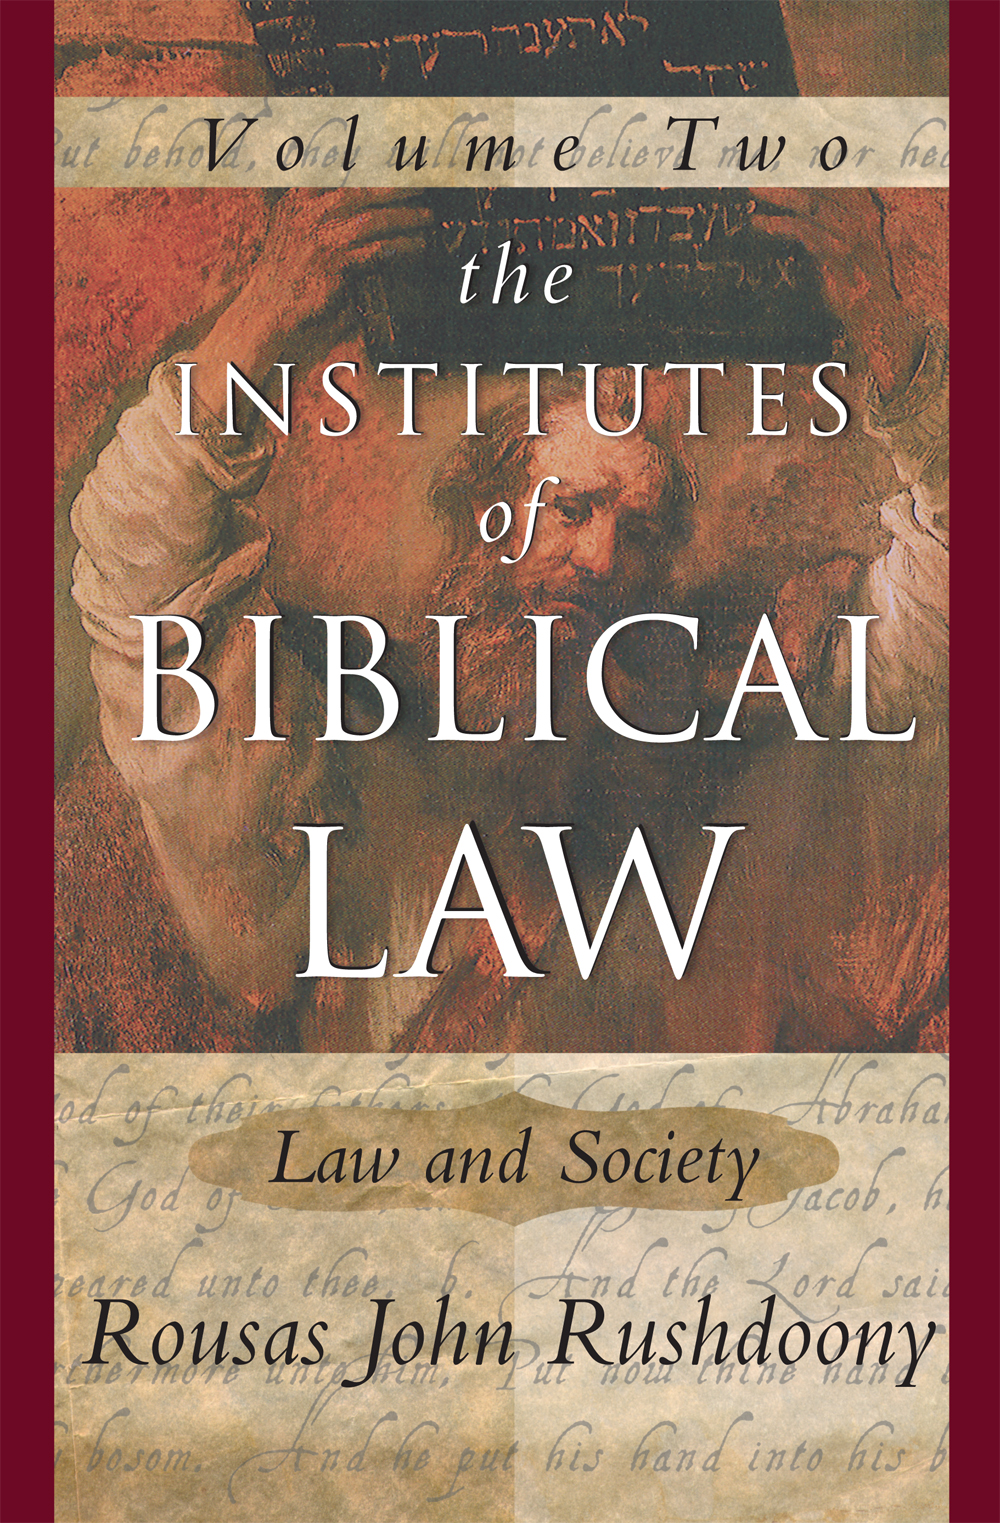 Institutes of Biblical Law Volume II: Law and Society, The